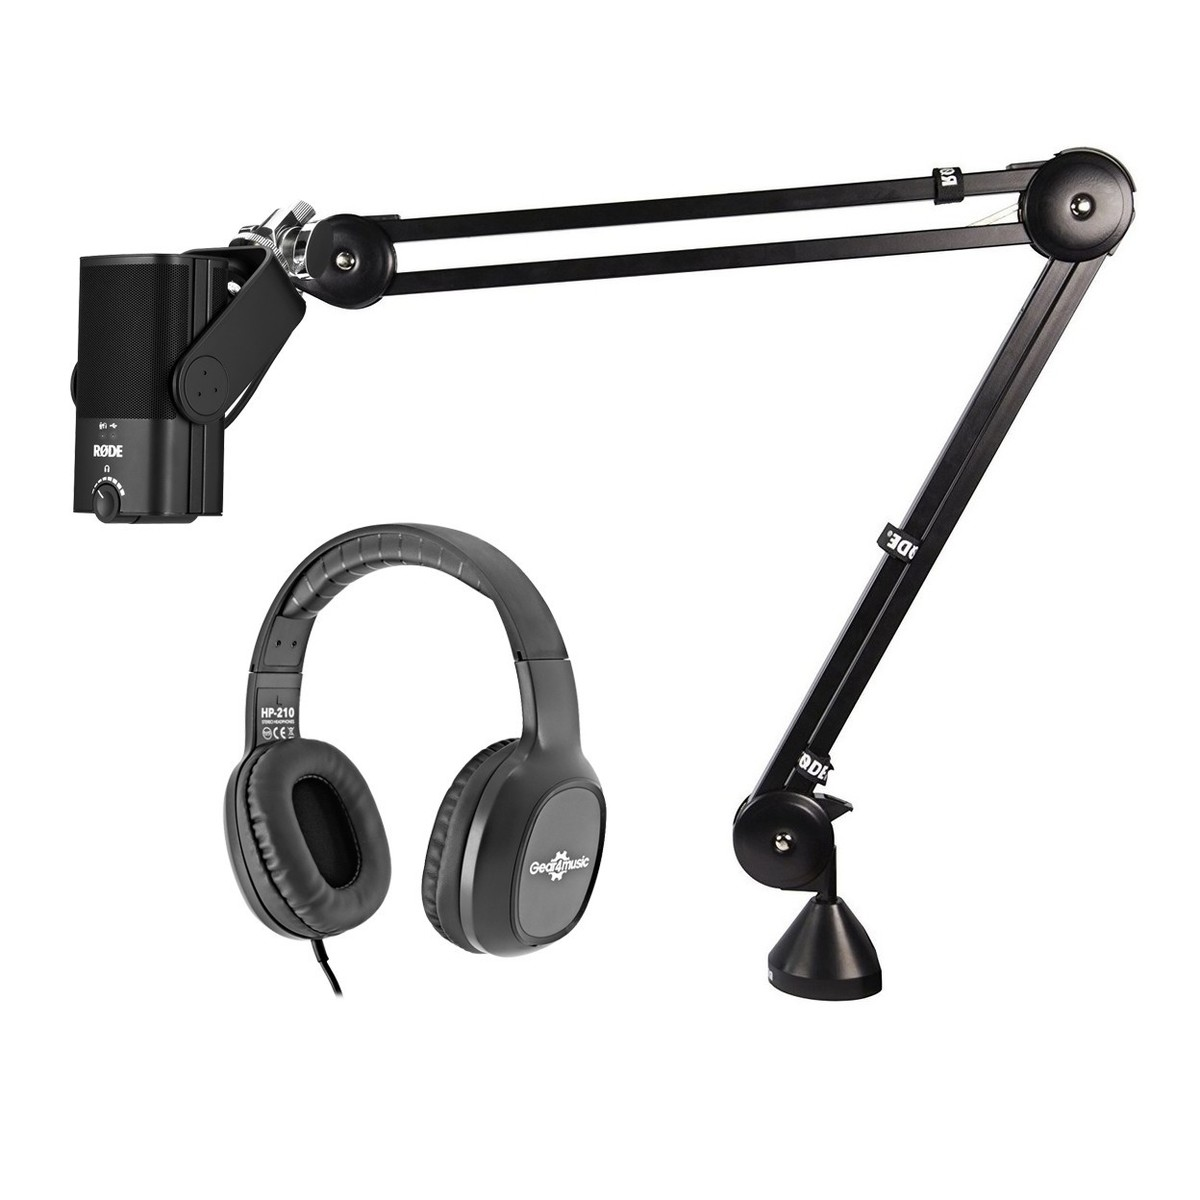 Rode NT USB Mini Microphone with Headphones | Gear4music